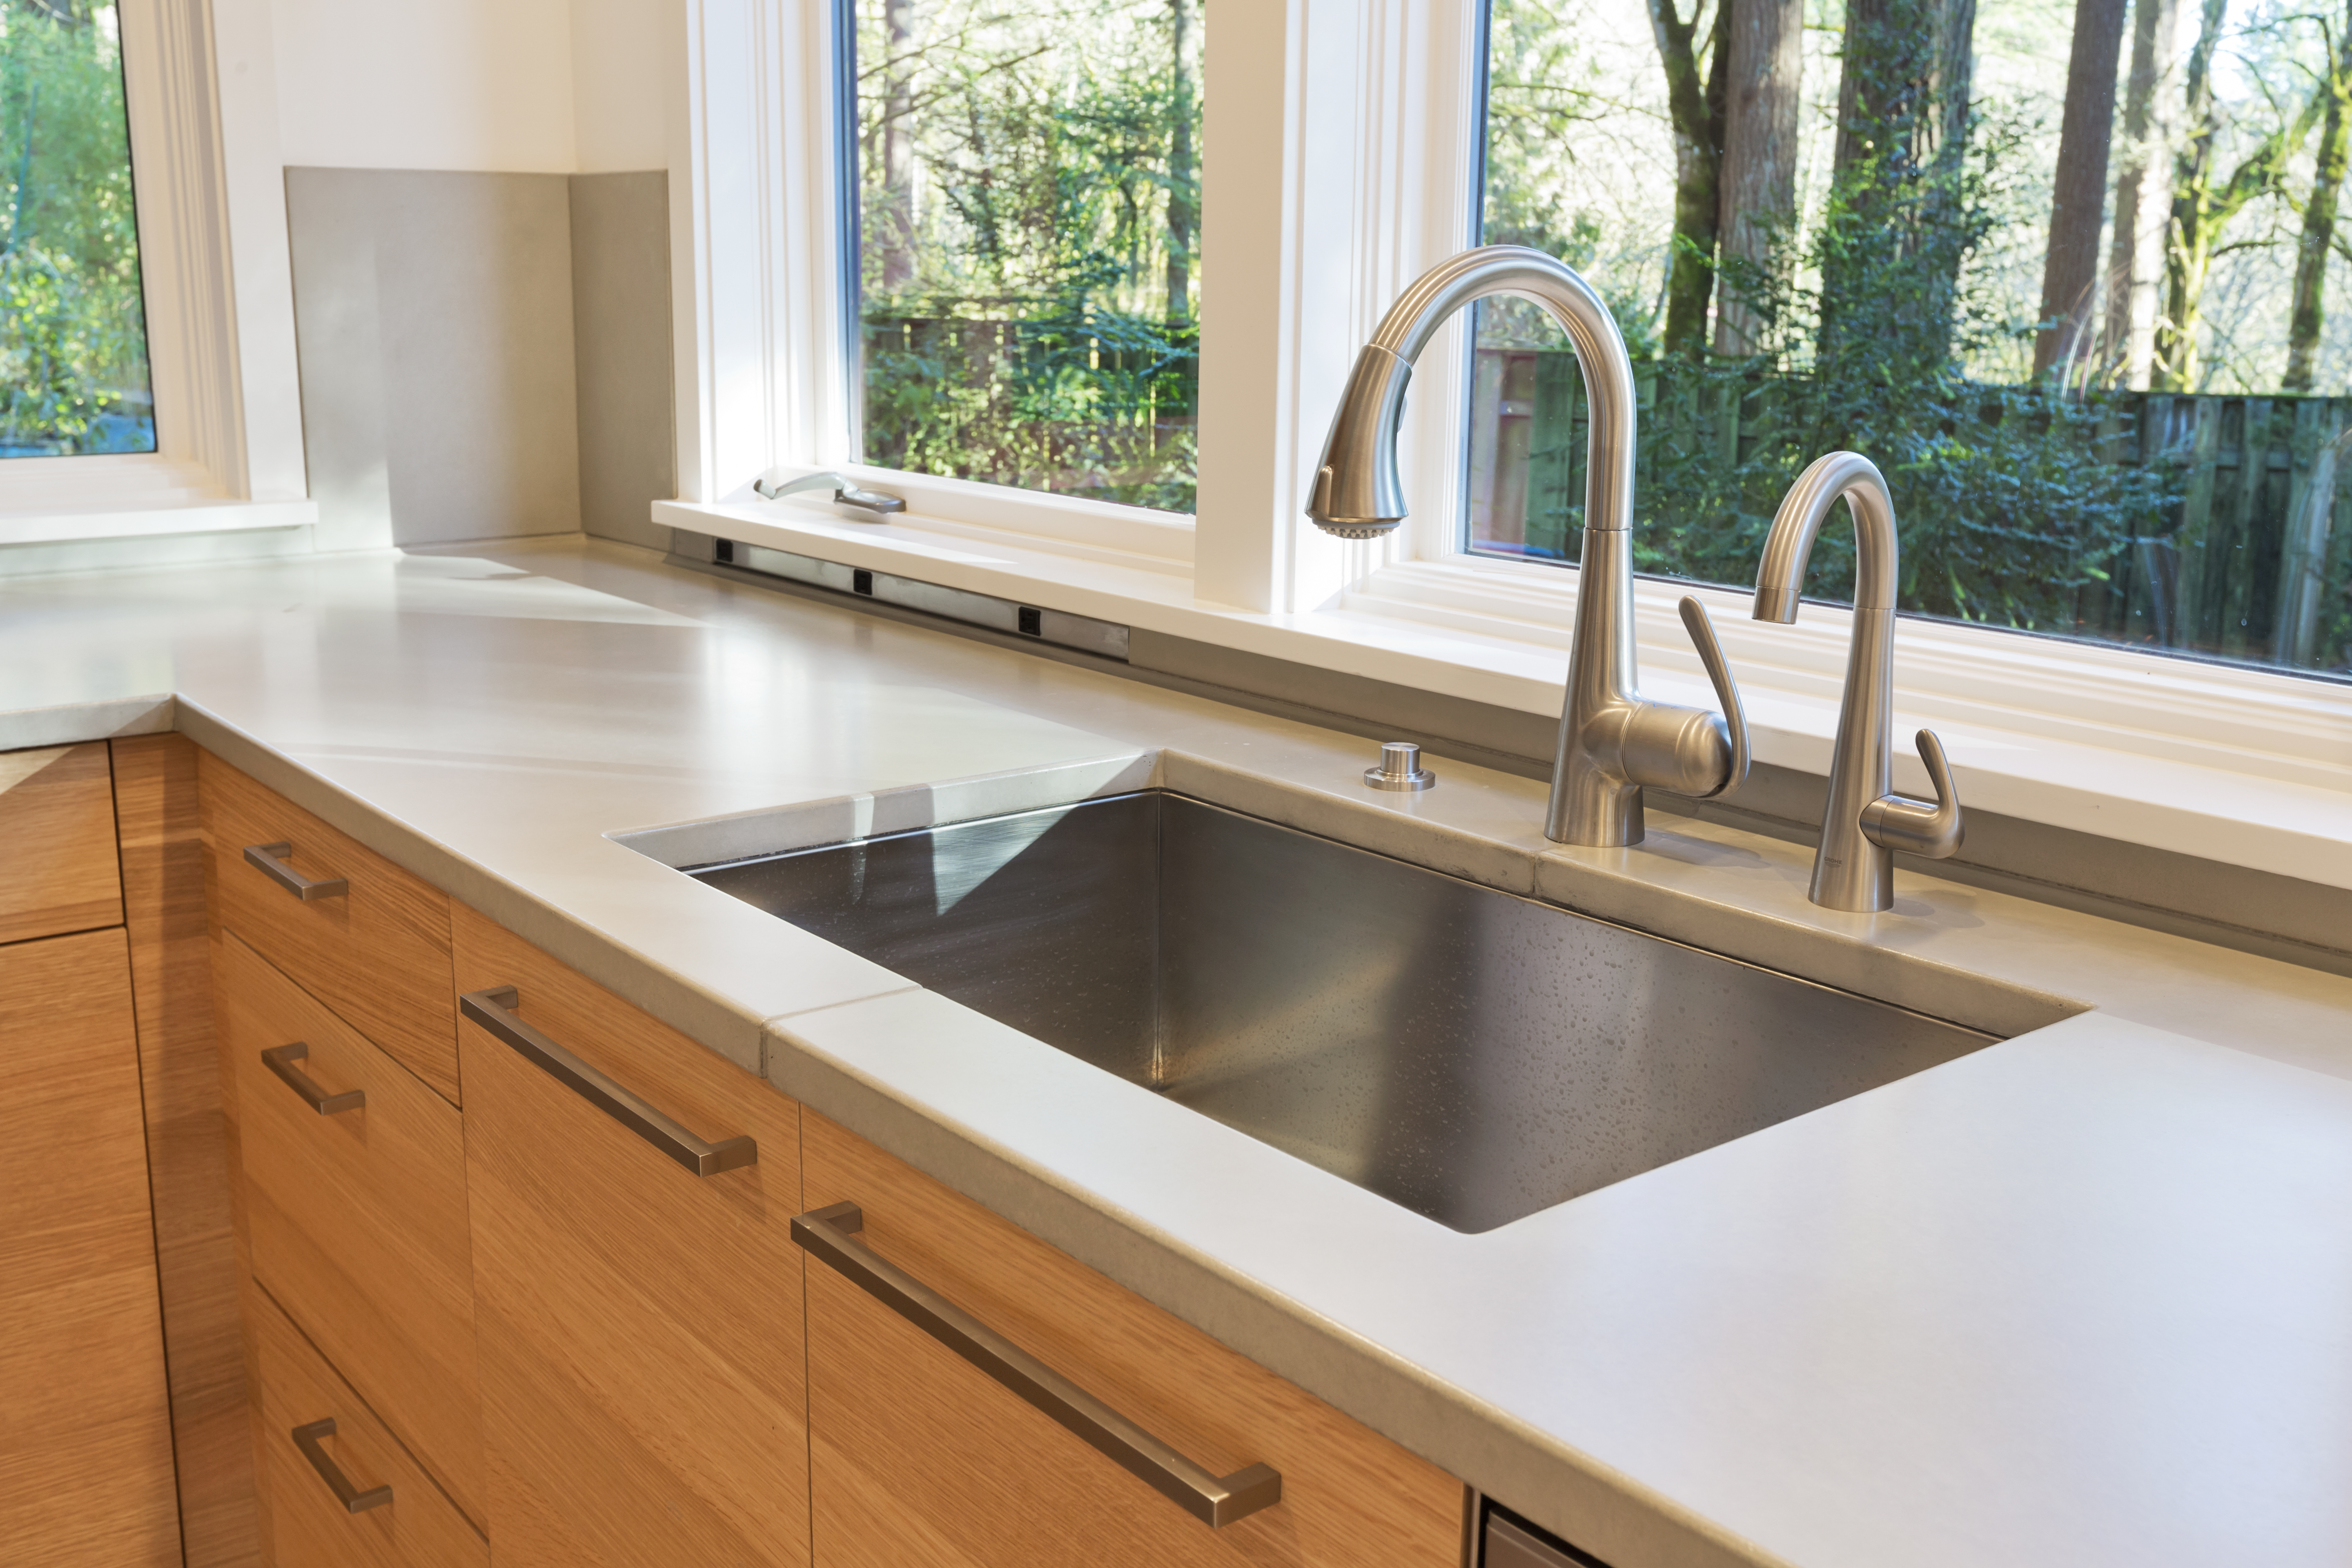 Groovy How To Fix A Leaky Kitchen Sink At The Supply Line Home Interior Design Ideas Tzicisoteloinfo